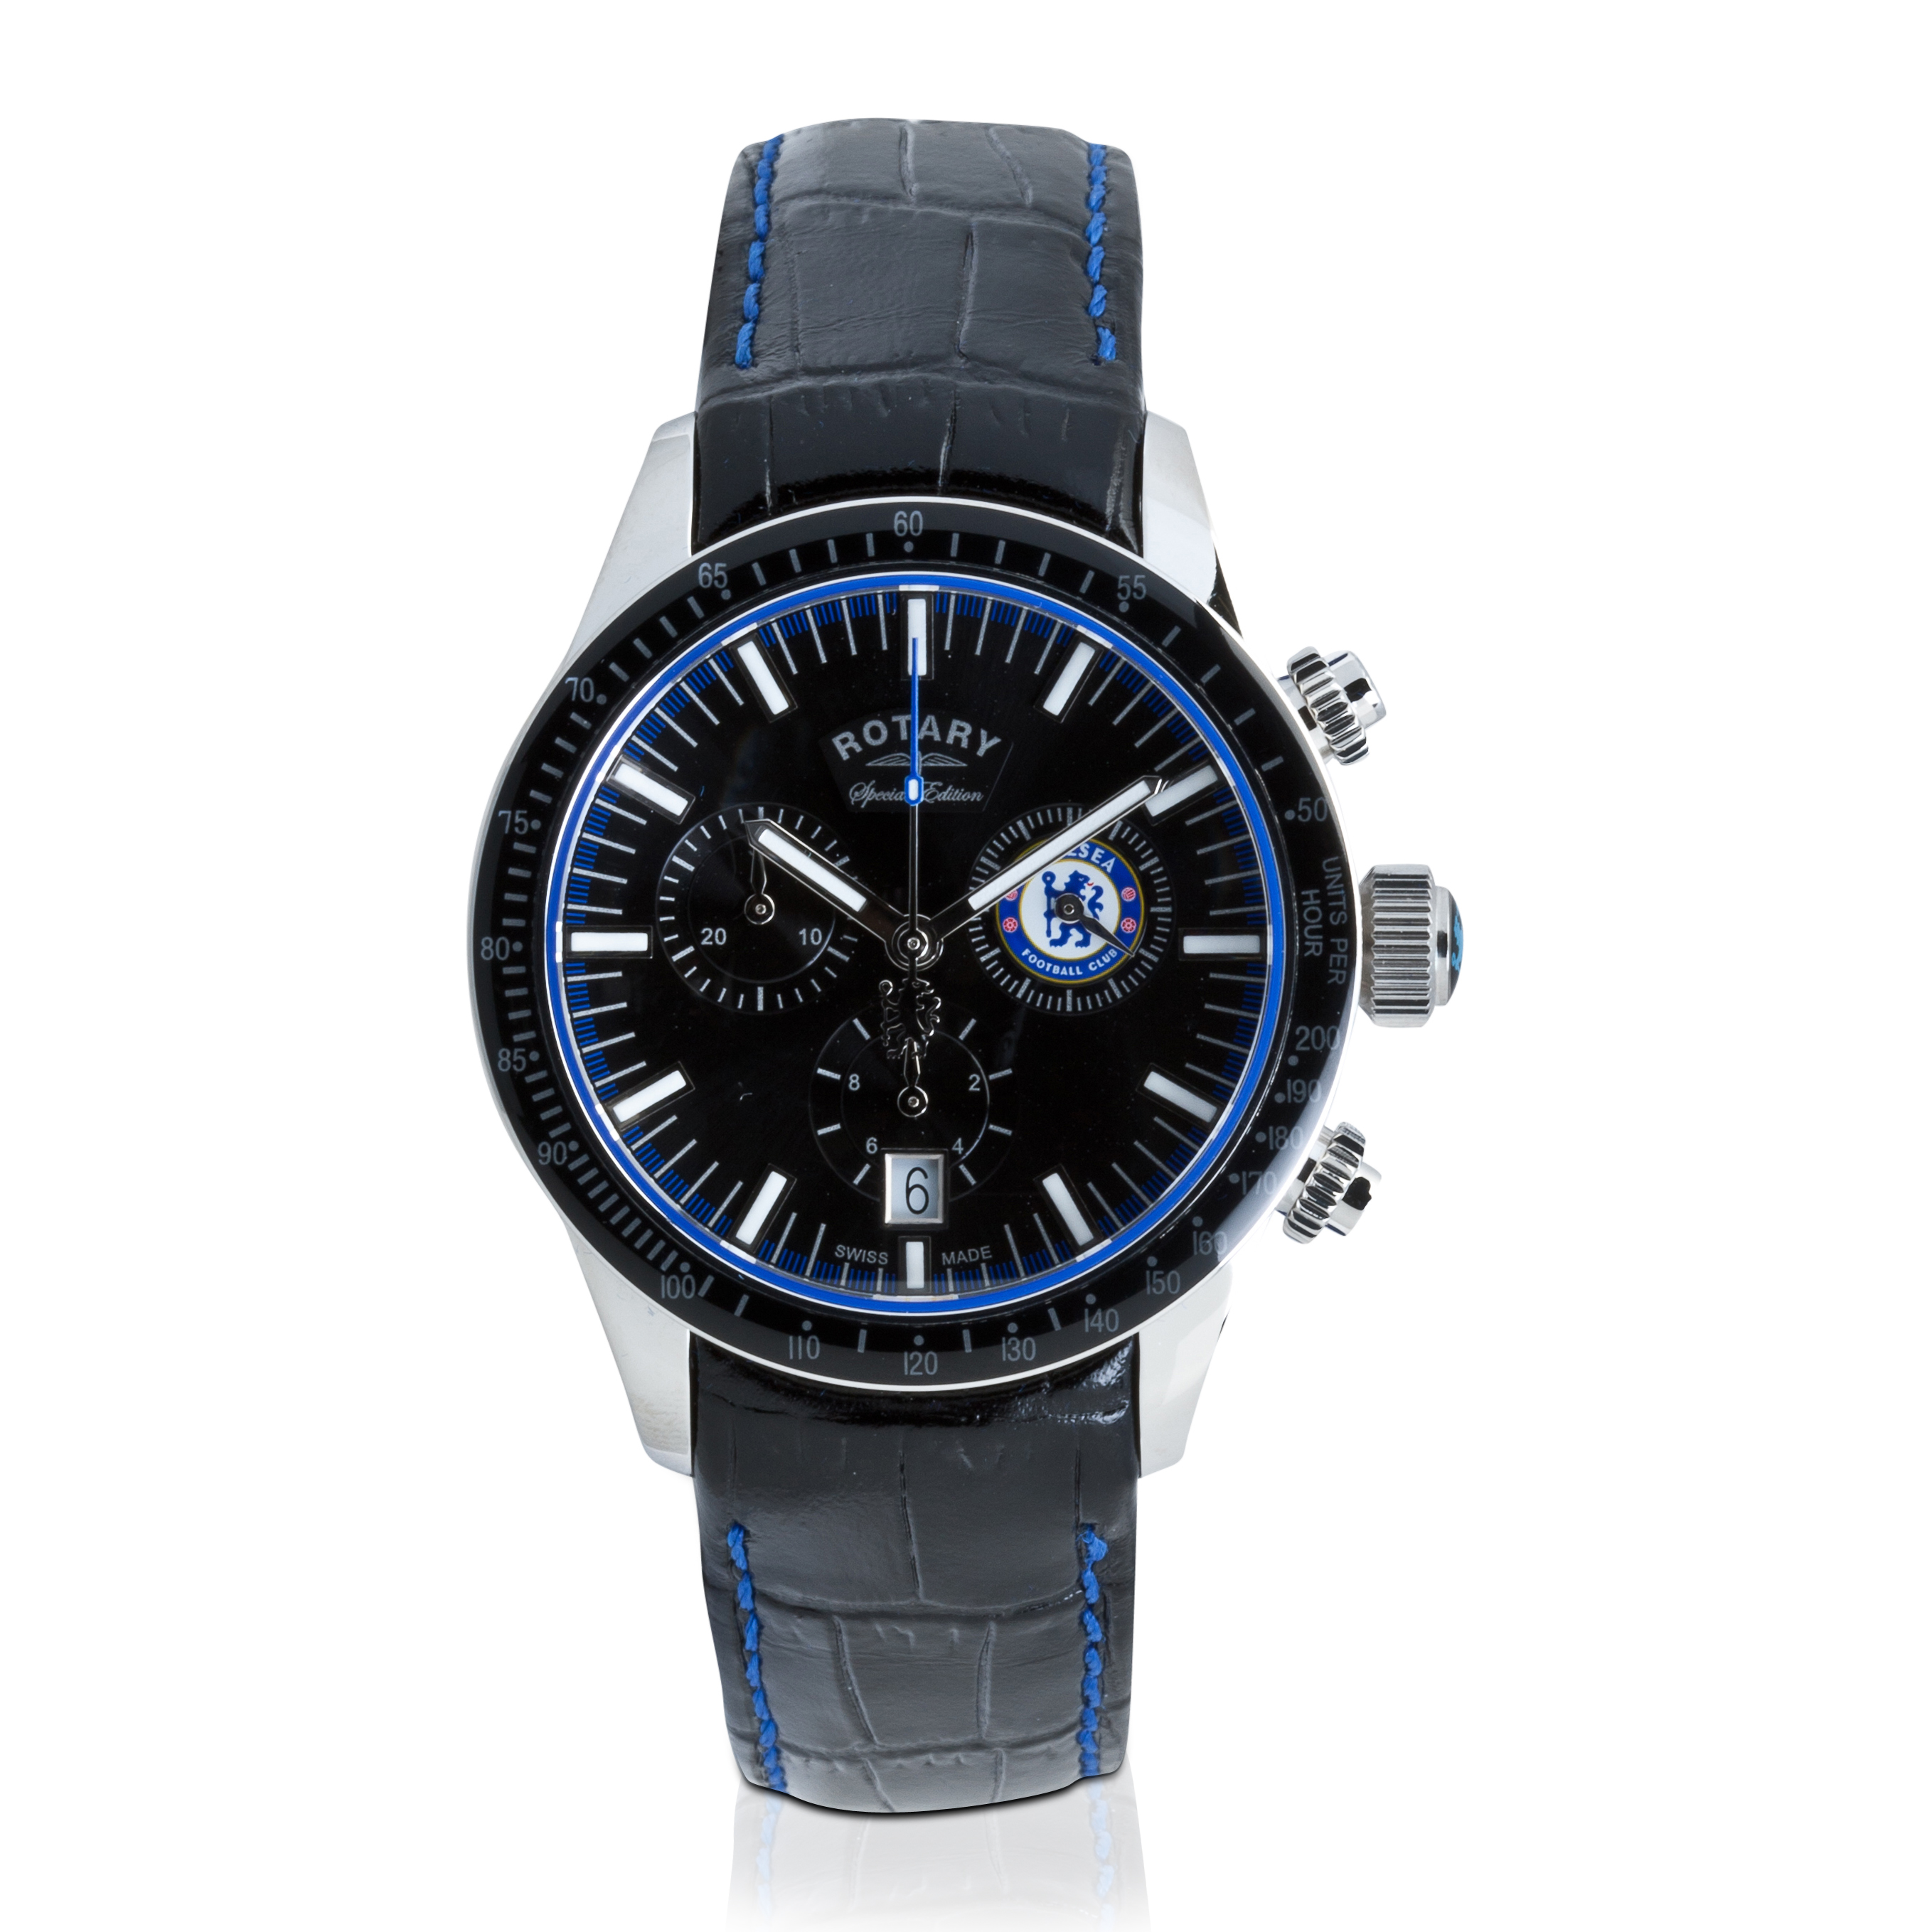 Chelsea 2013/14 Special Edition Rotary Leather Strap Watch